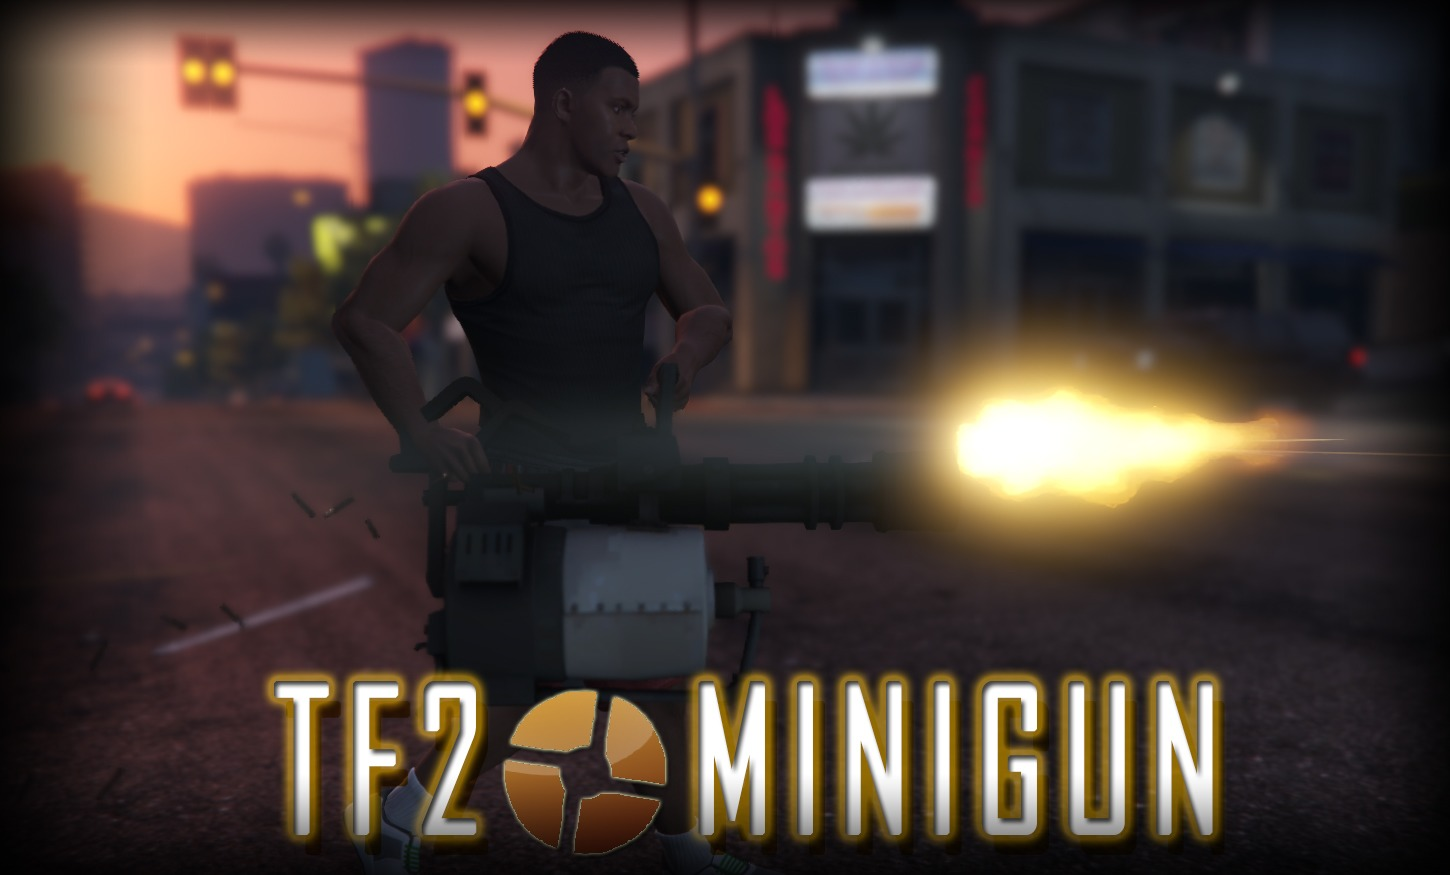 [TF2] Heavy Minigun - GTA5